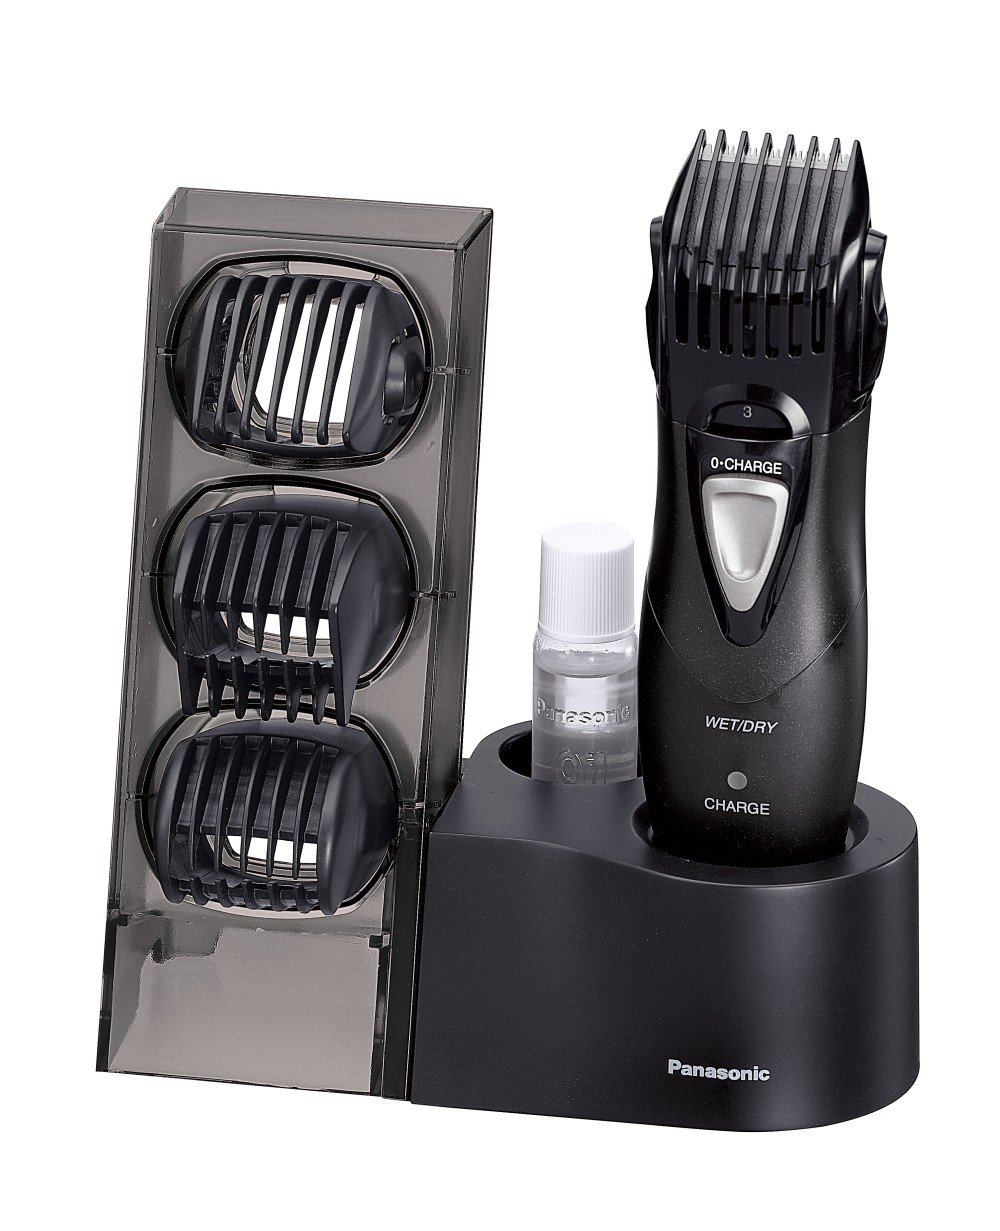 Panasonic Multi Trimmer ER-GY10-K (black hair, beard, armpit, bikini line body) (japan import)